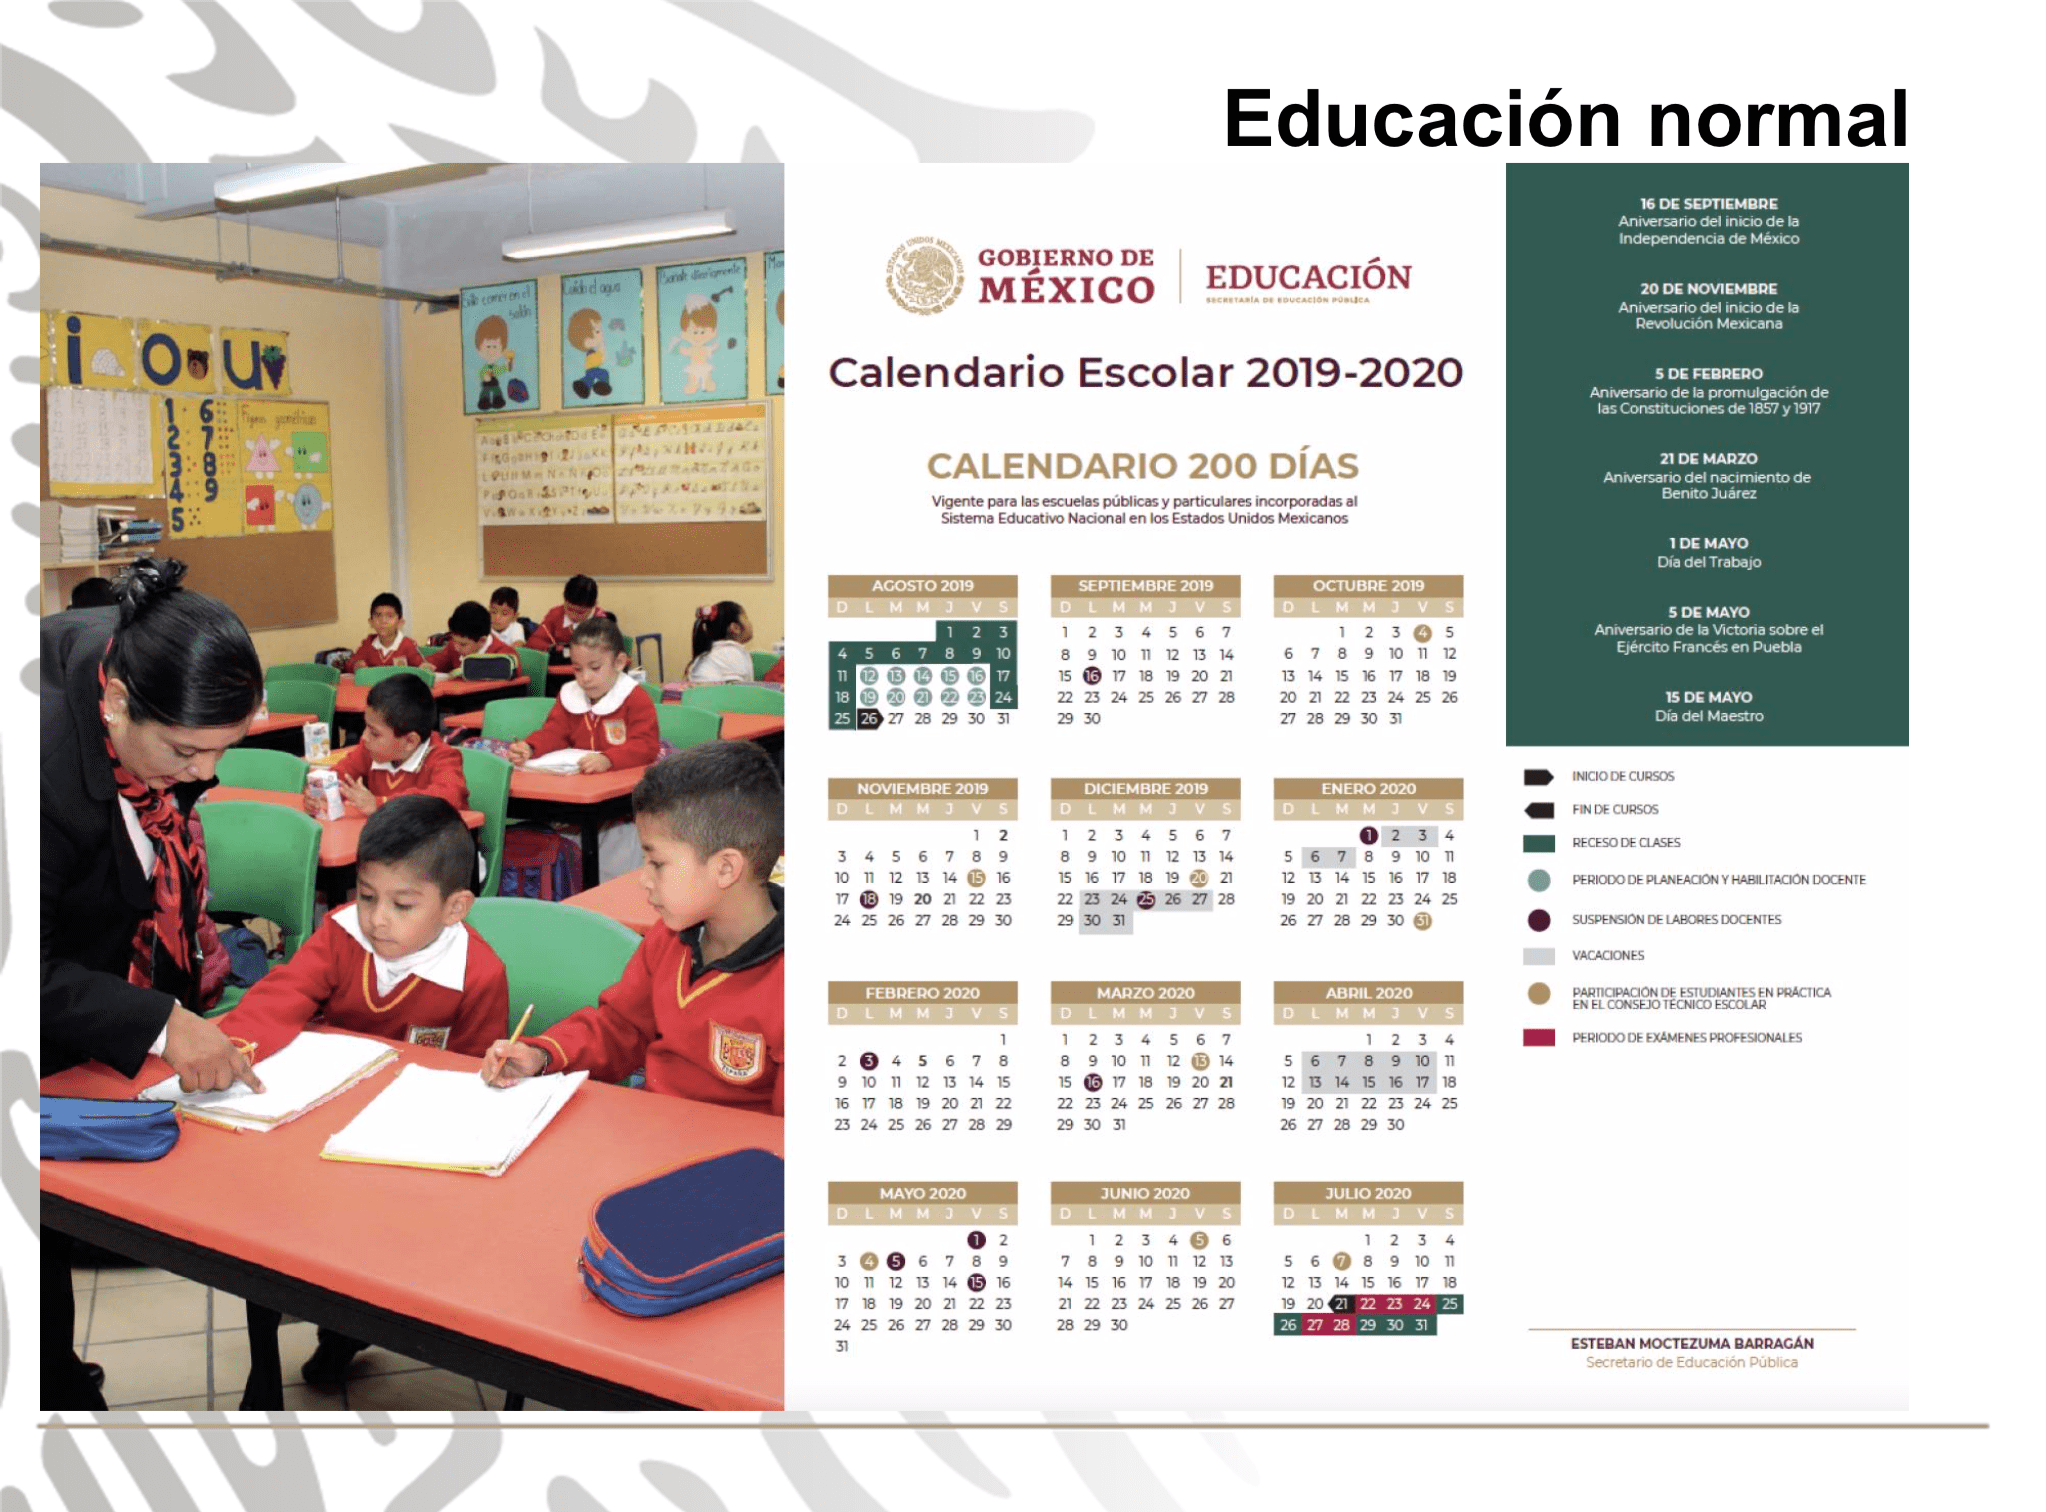 Calendario Escolar 18 19 Puebla.Sep Presenta Calendario Escolar 2019 2020 Centro Noticias